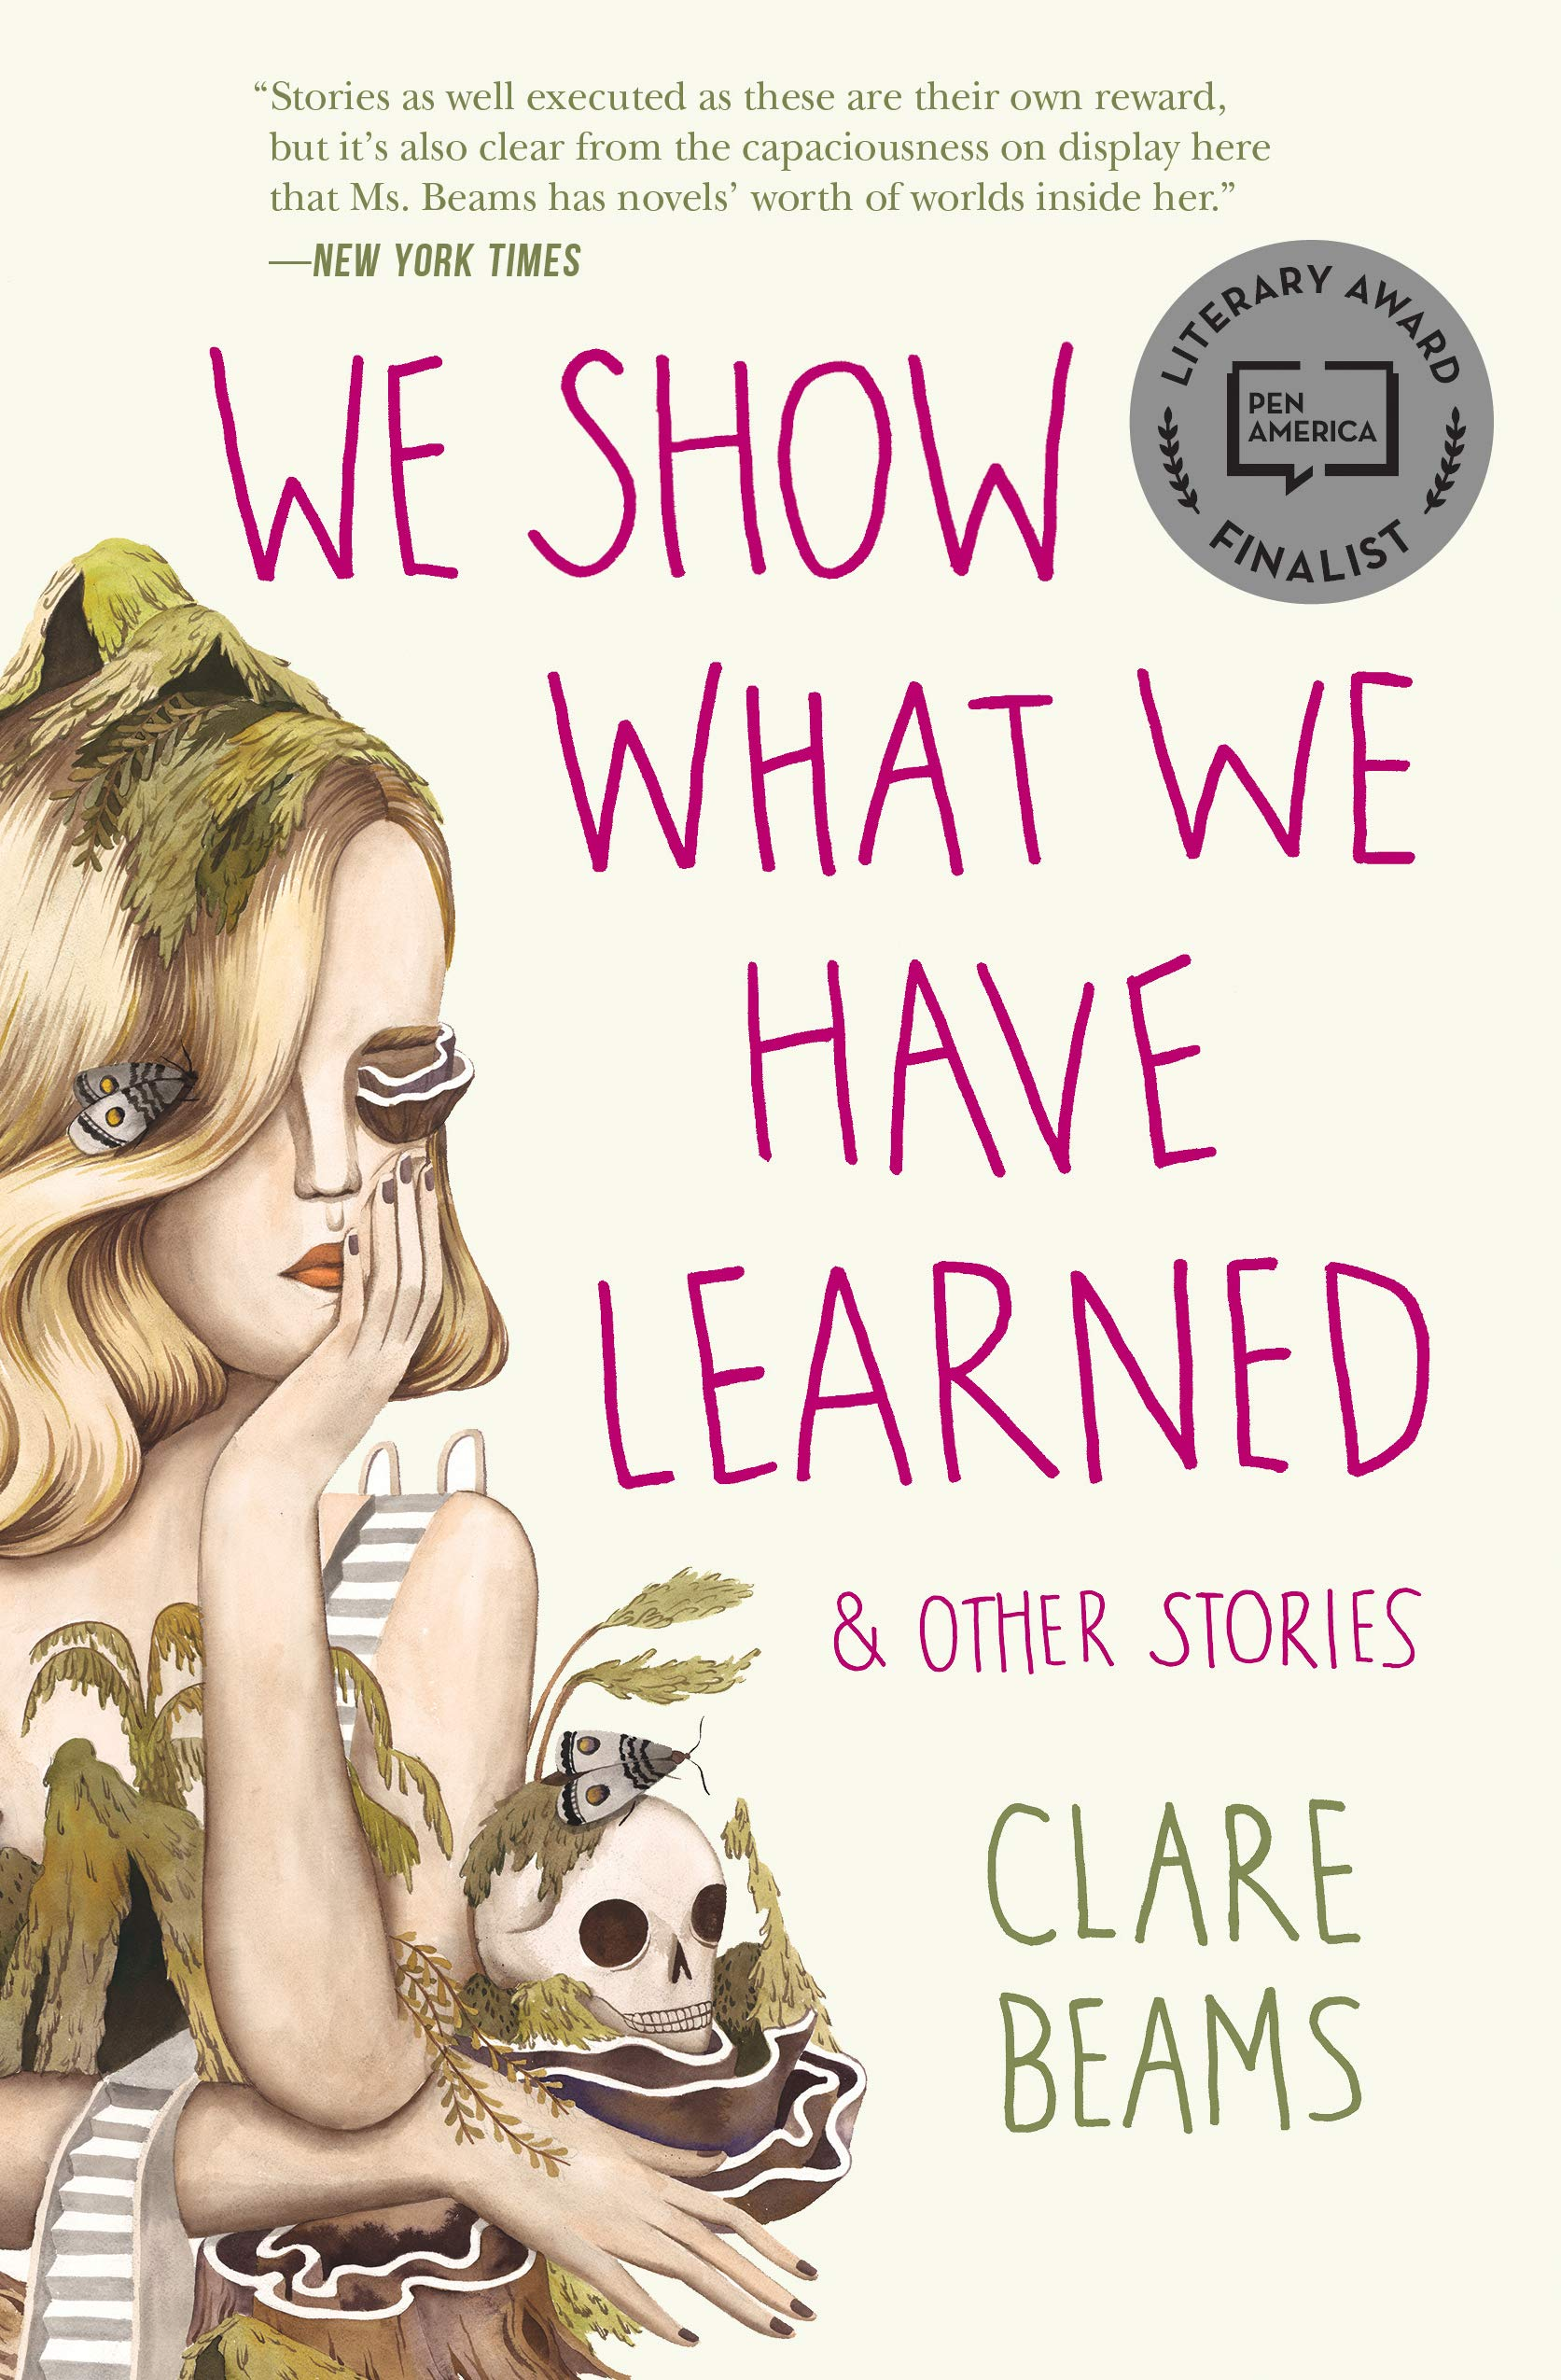 We Show What We Have Learned & Other Stories: Clare Beams